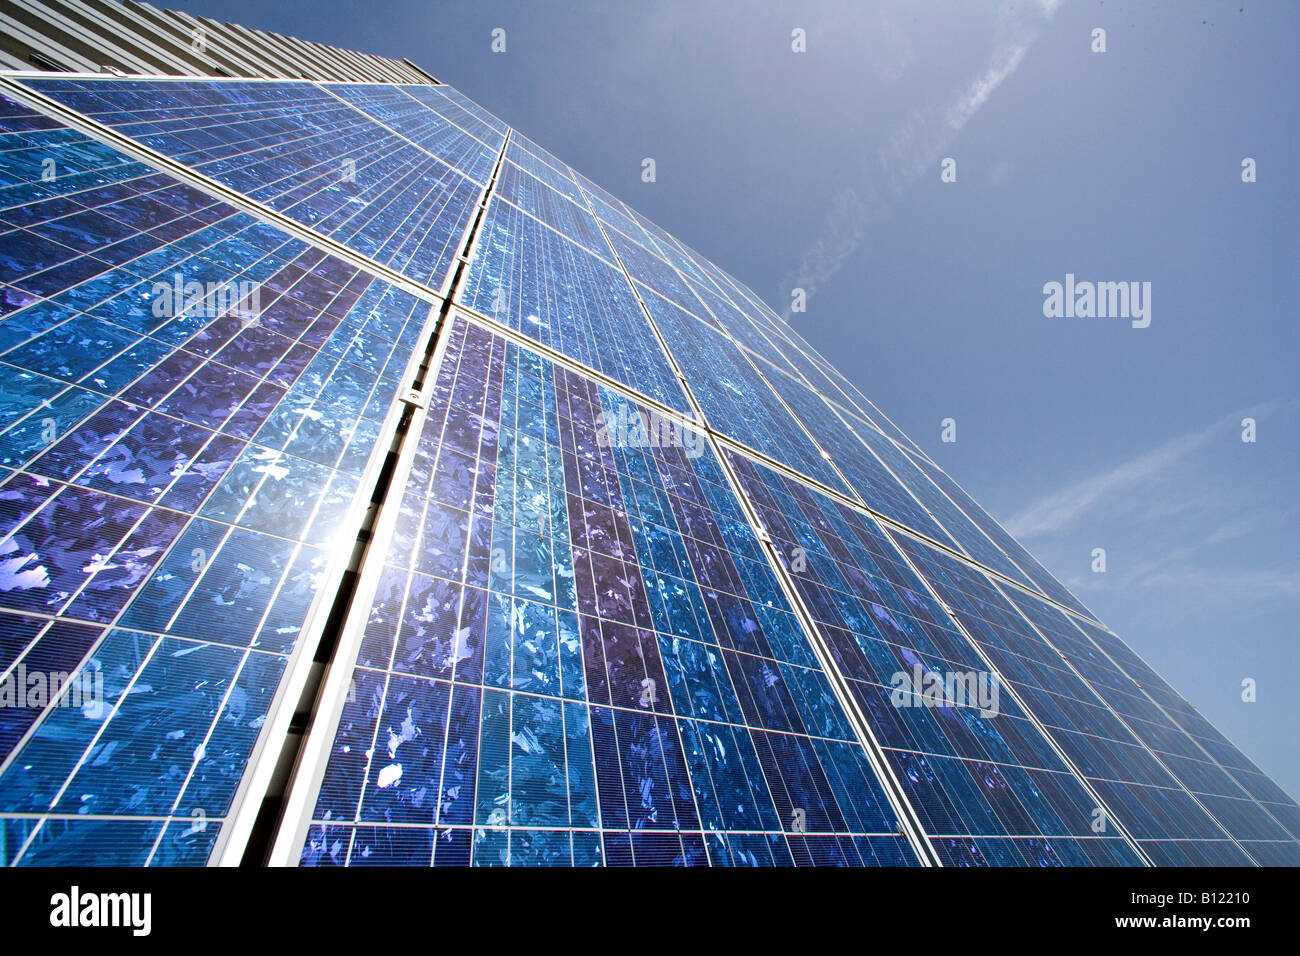 Production site for solar panels of the aleo solar AG in Prenzlau Solar panels at the outside of the plant - Stock Image